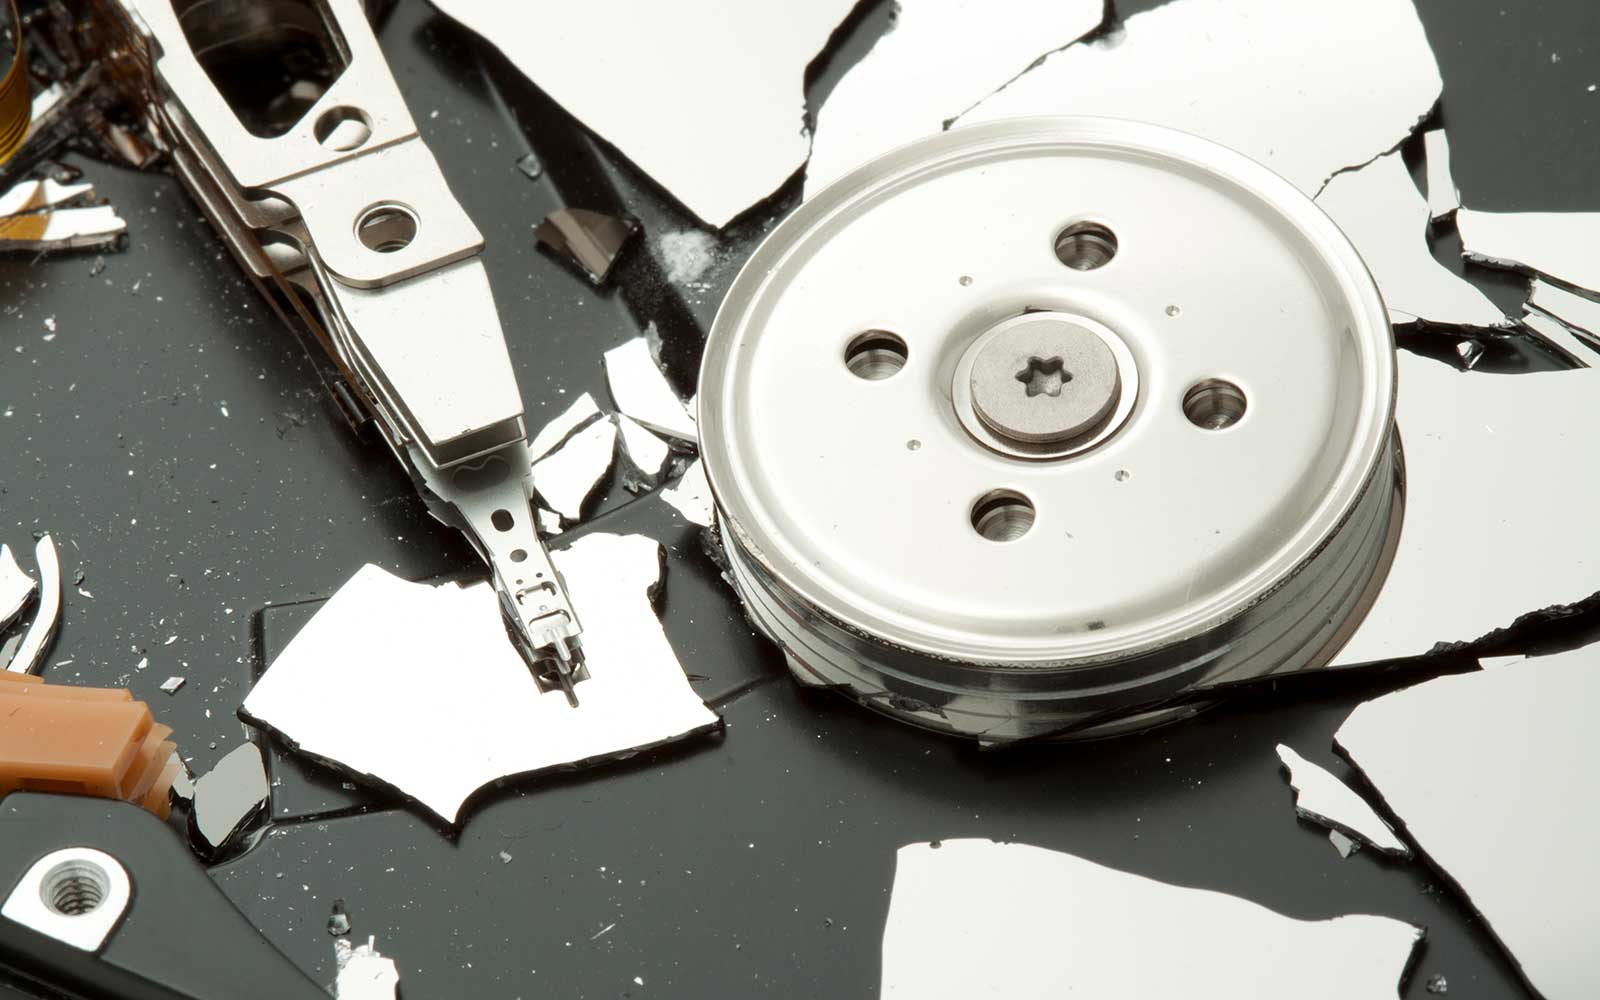 best way to destroy a hard drive